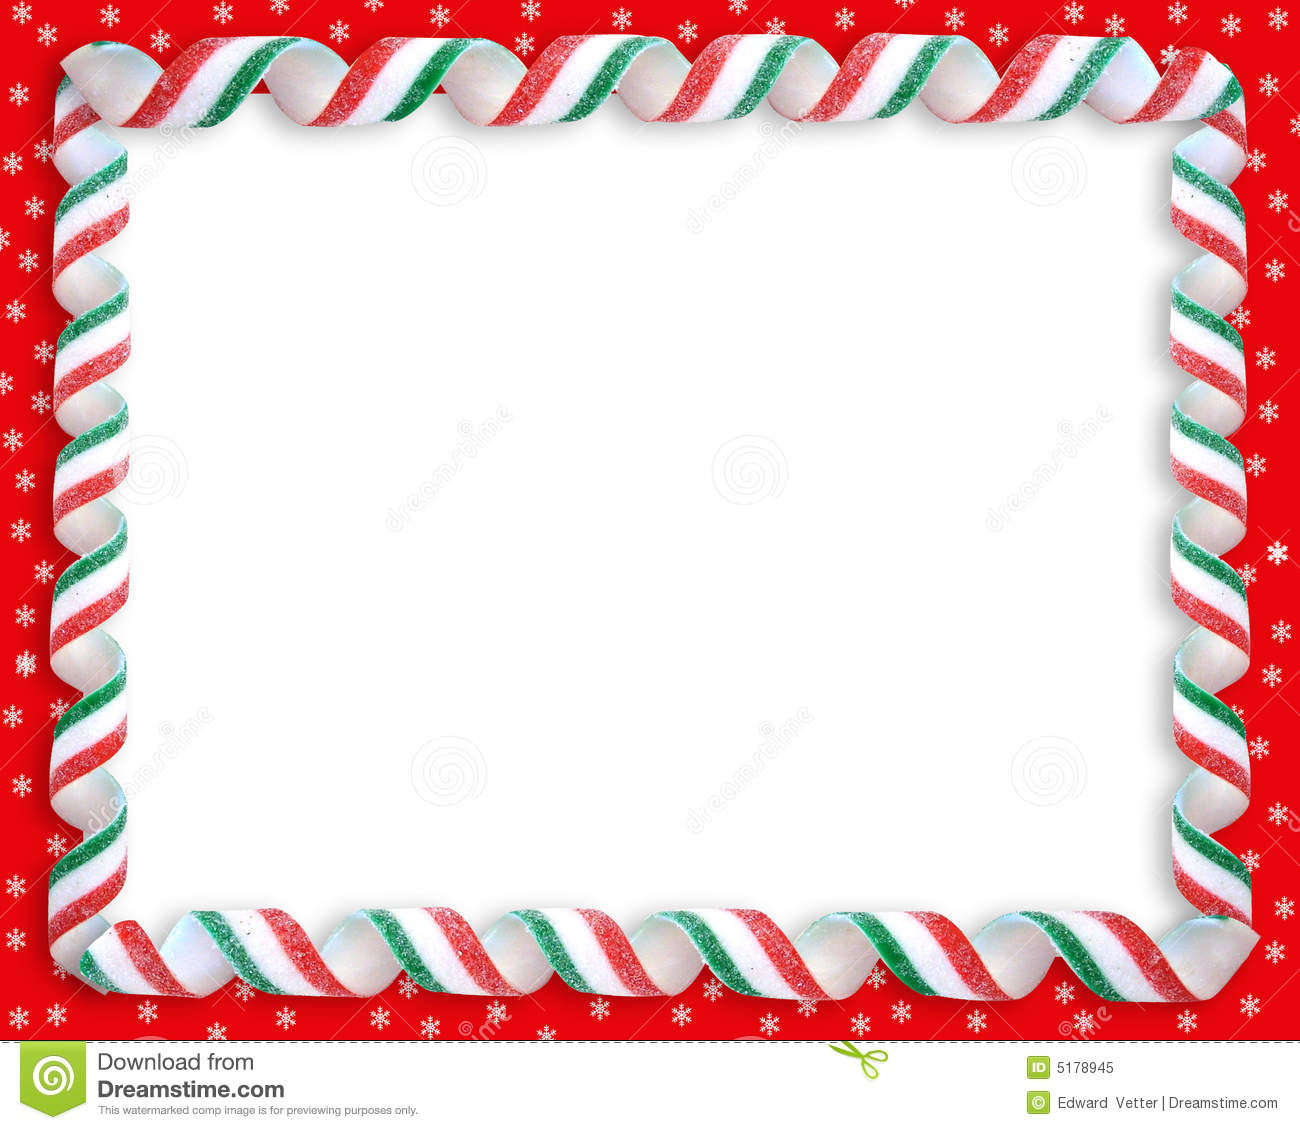 Christmas Candy Frame Border Royalty Free Stock Photo - Image: 5178945